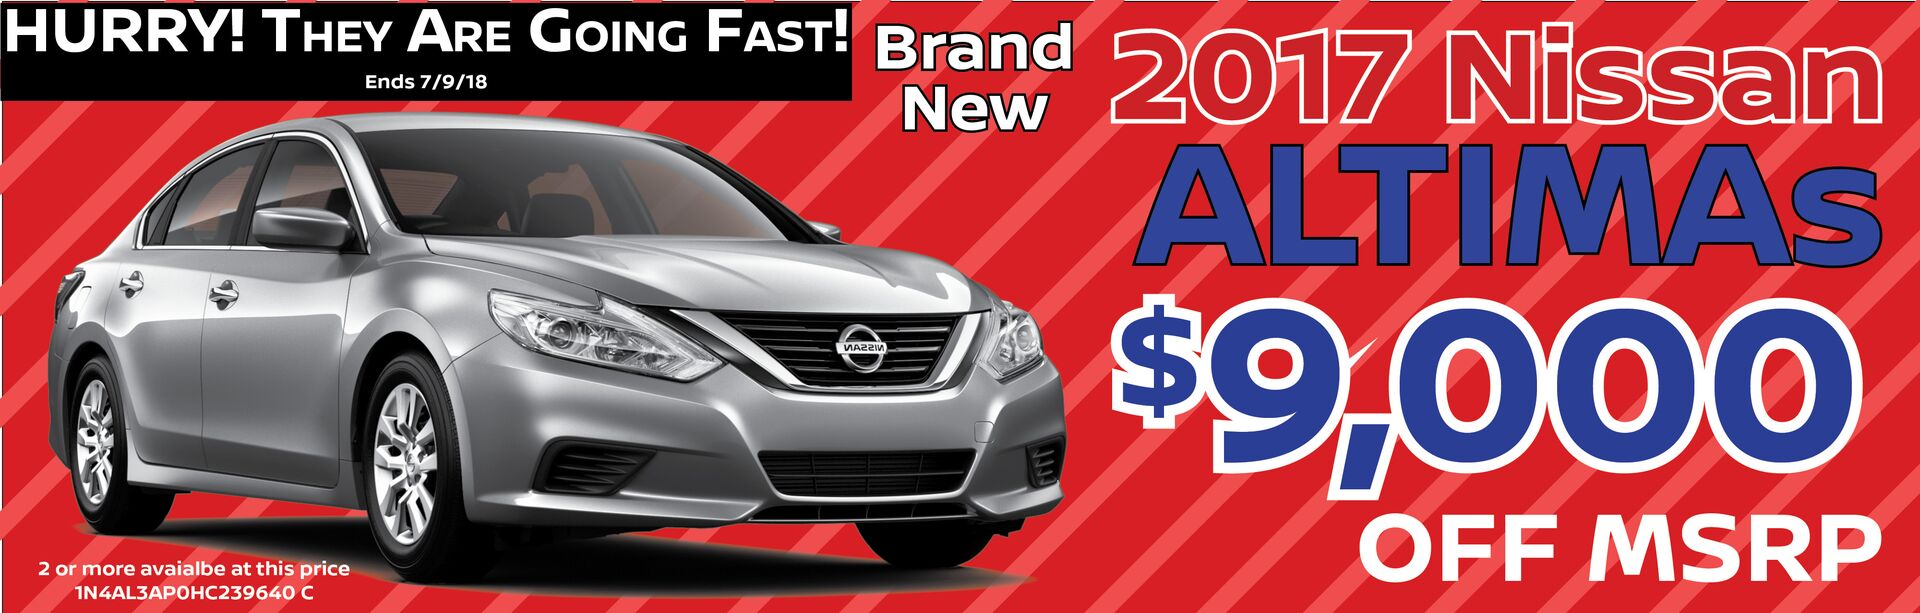 Save Thousands on an Altima